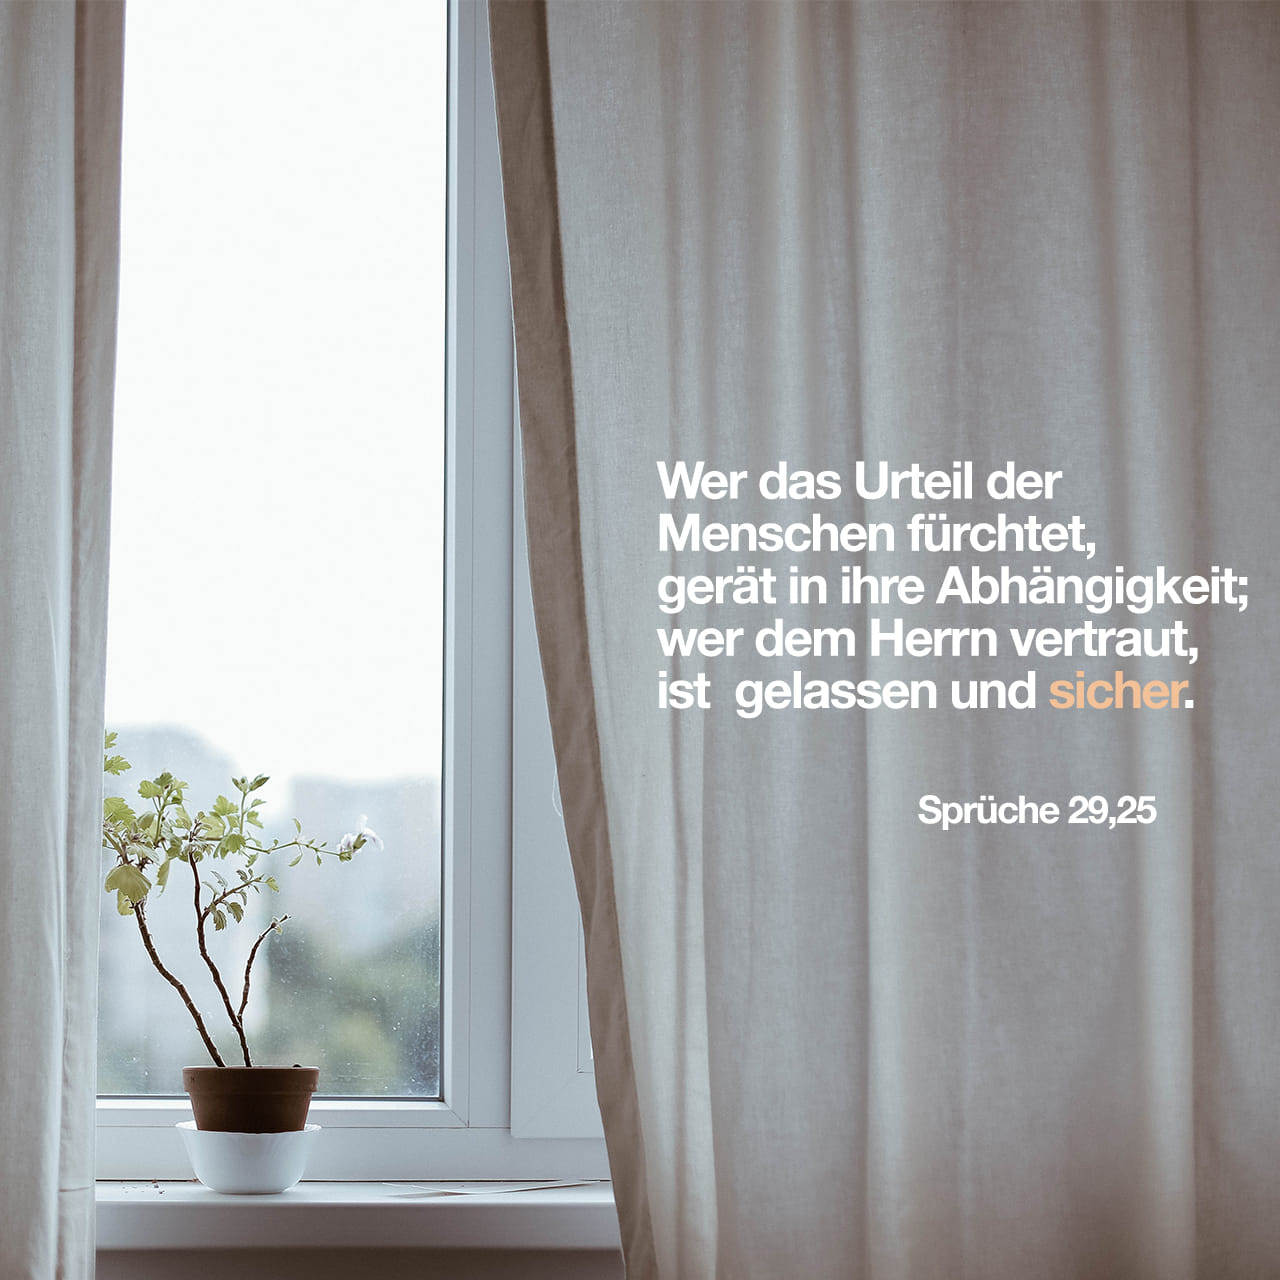 Verse of the Day   Sprüche 29:25 | The Bible App | Bible.com